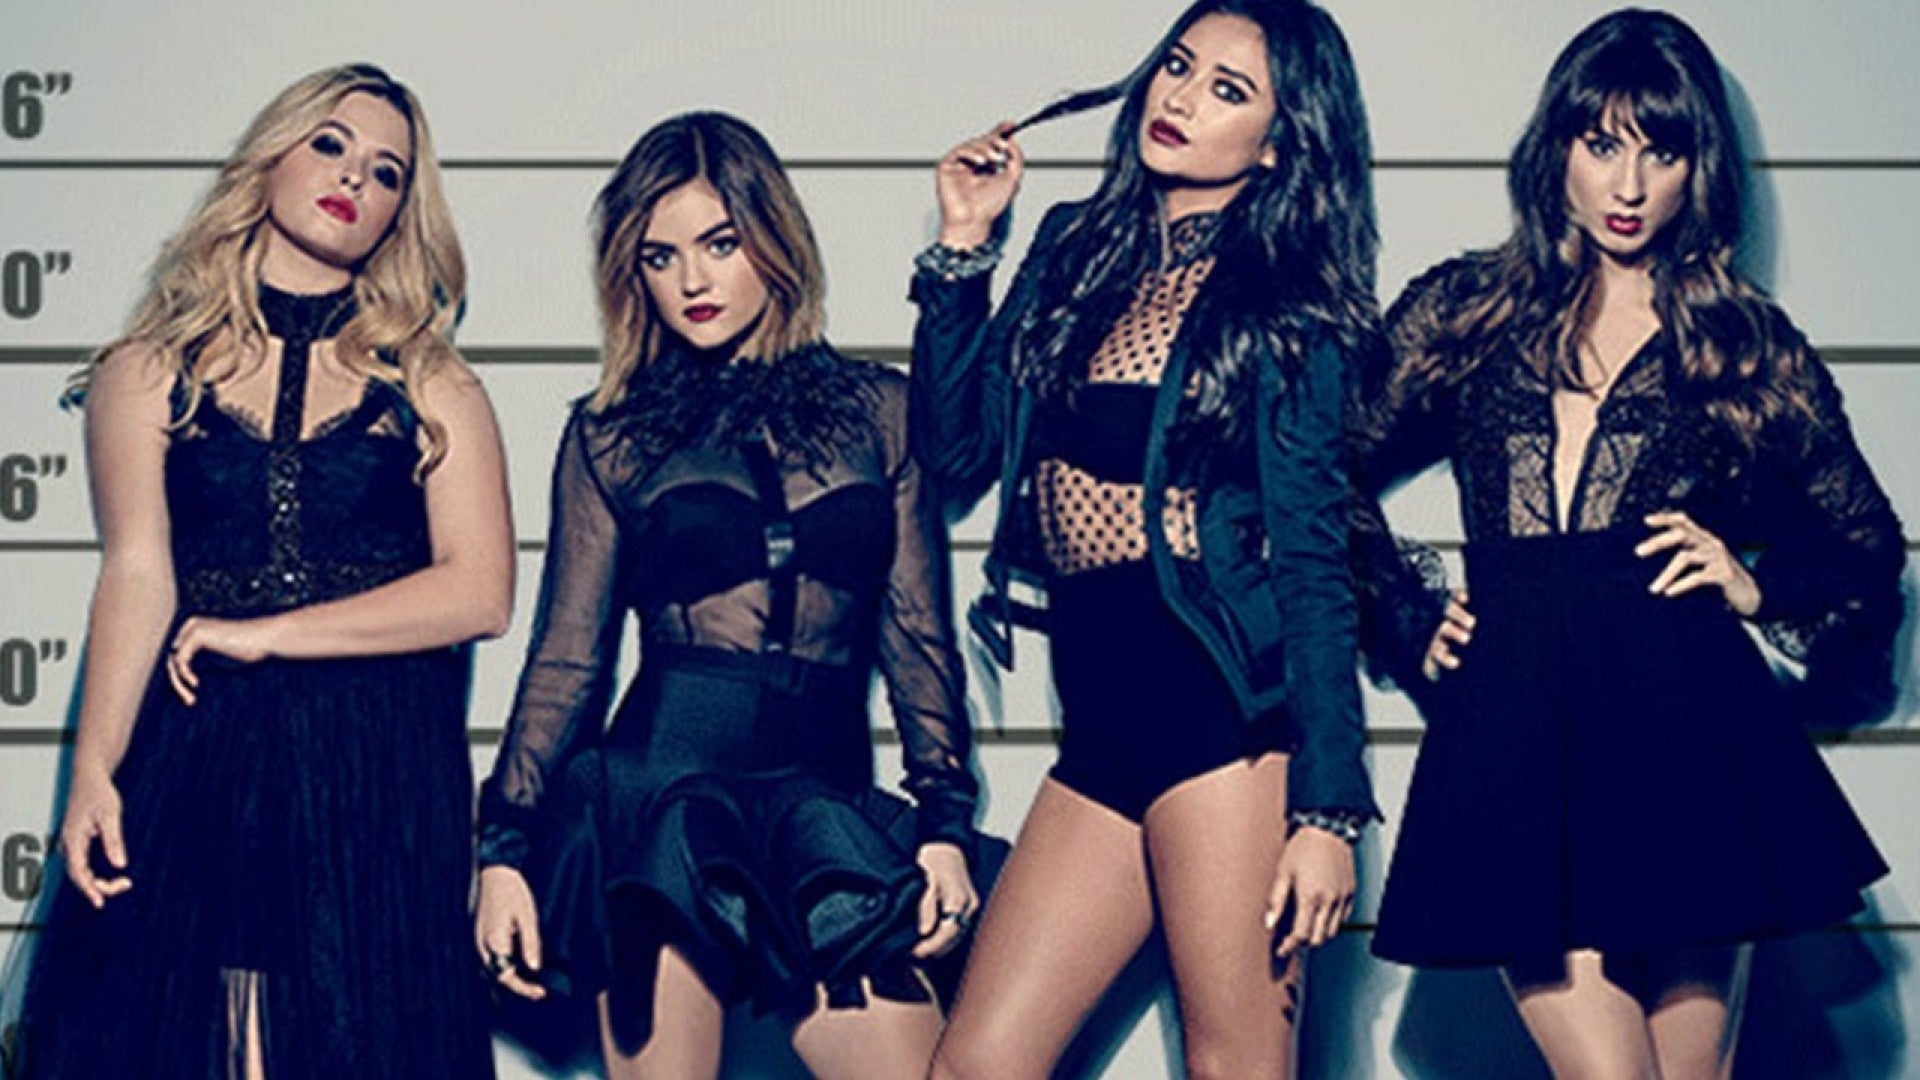 EXCLUSIVE: Is 'Pretty Little Liars' Ending? Stars Say the 'Full Cast'  Probably Won't Come Back After Season 7! | Entertainment Tonight